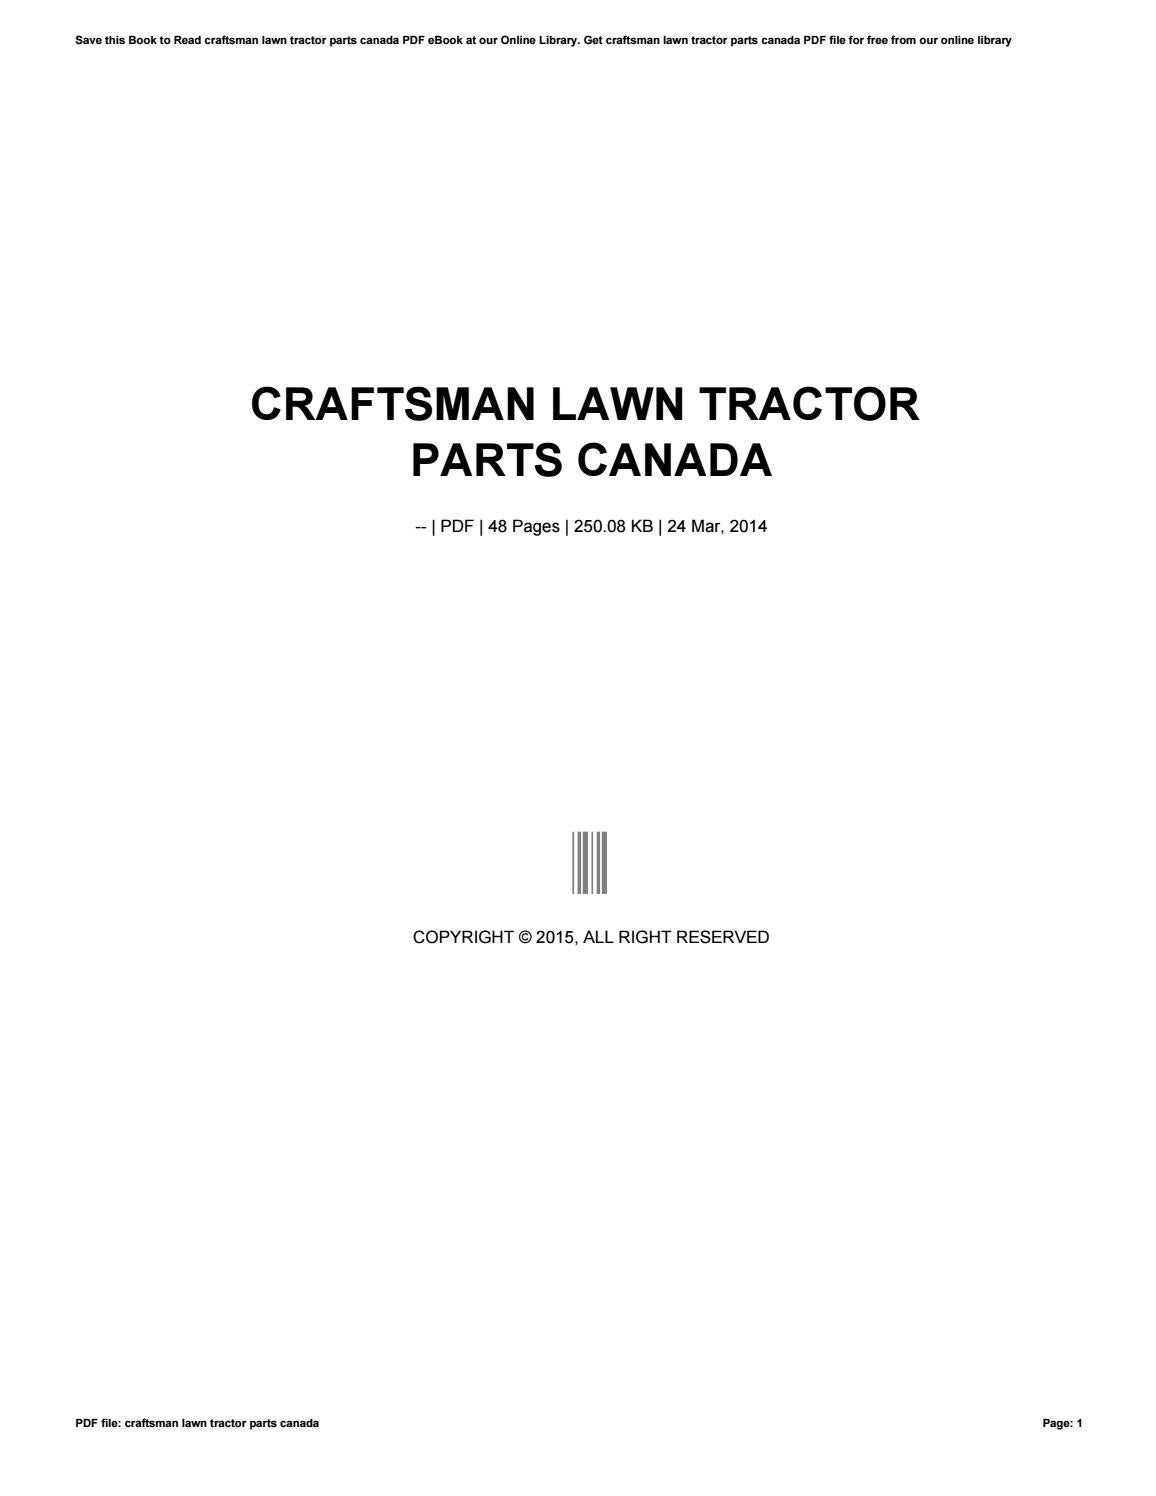 Craftsman Lawn Tractor Parts Canada By V667 Issuu Wiring Harness